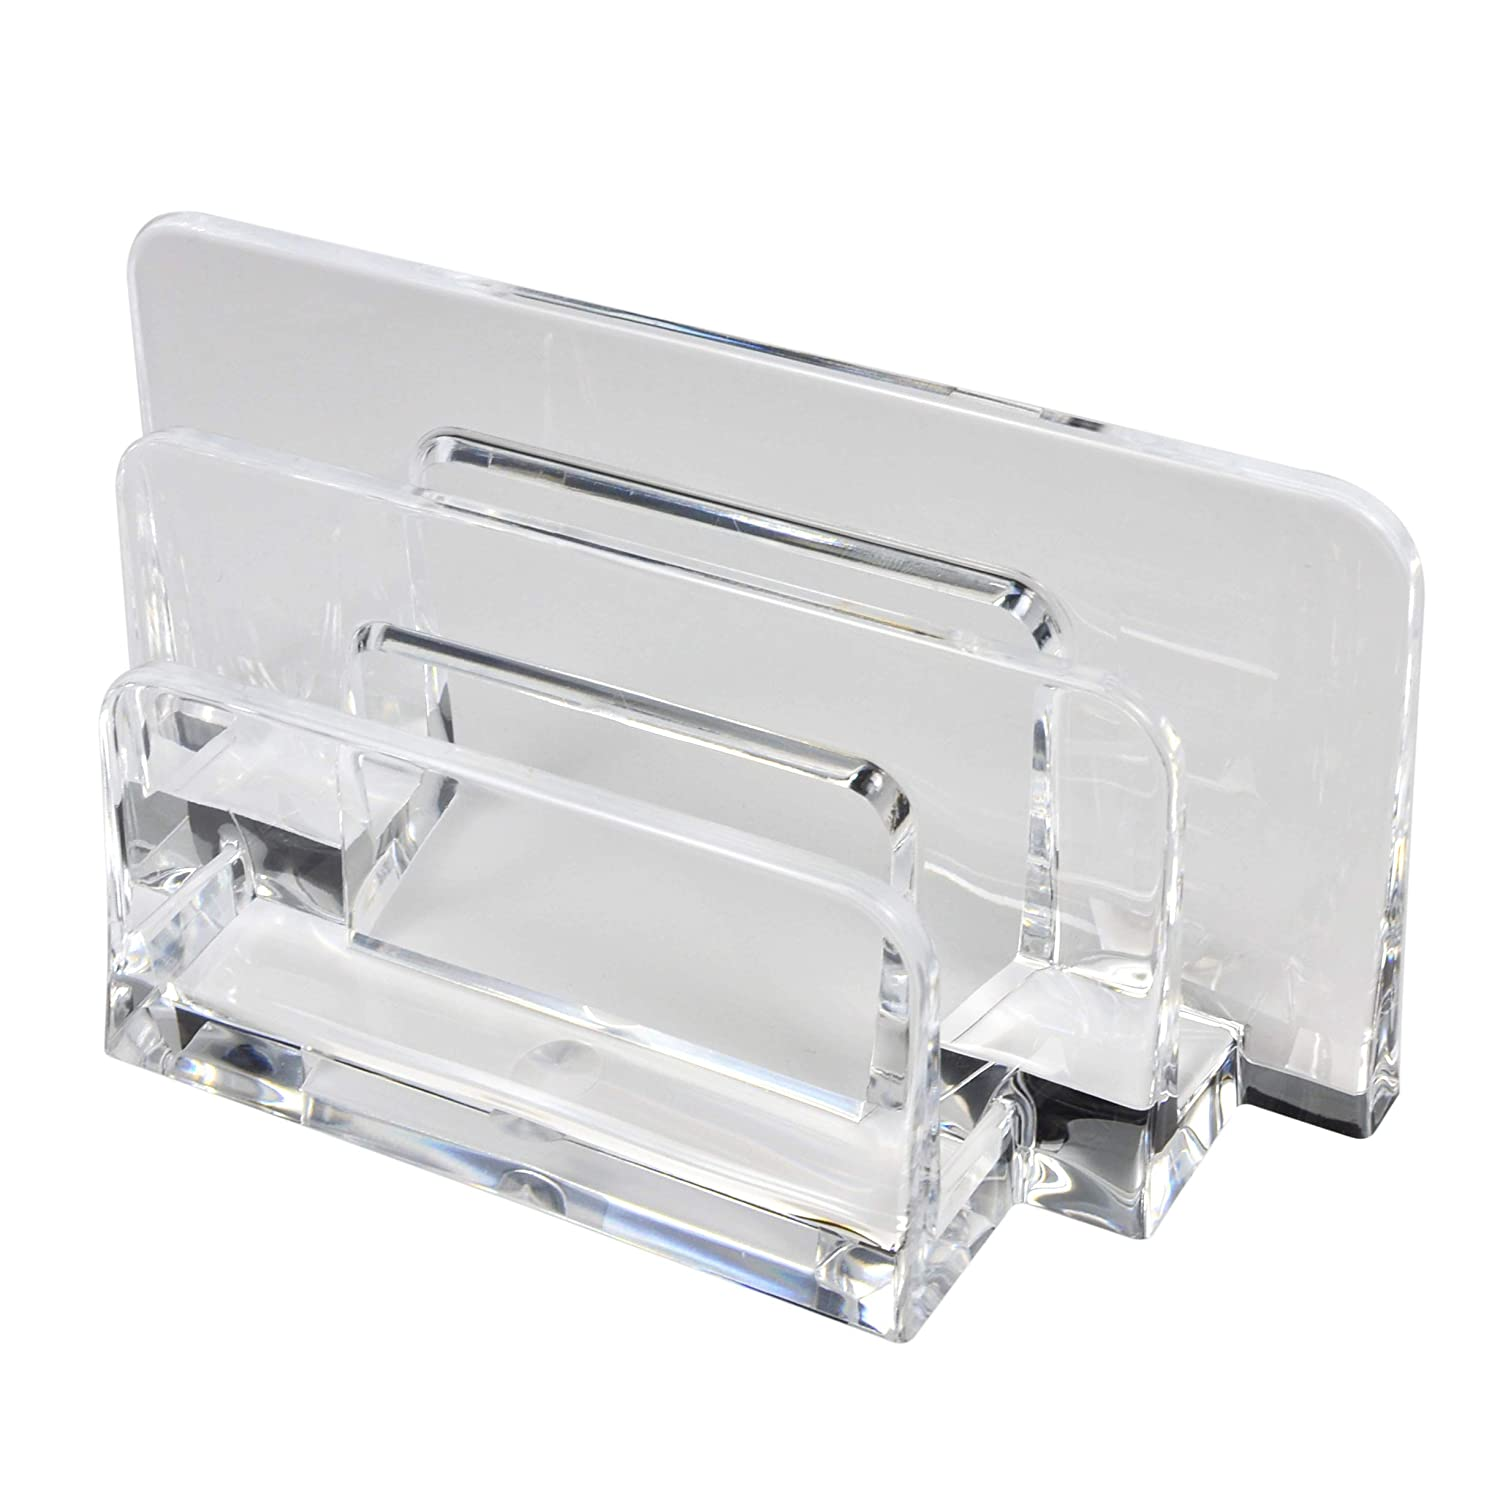 COM.TOP - Acrylic Letter Sorter File Folder Sorter for Paper, Letter, Envelope, Office File Organizer | Office Supplies, Desk Accessories - Clear, 6.4 x 2.4 x 3.1